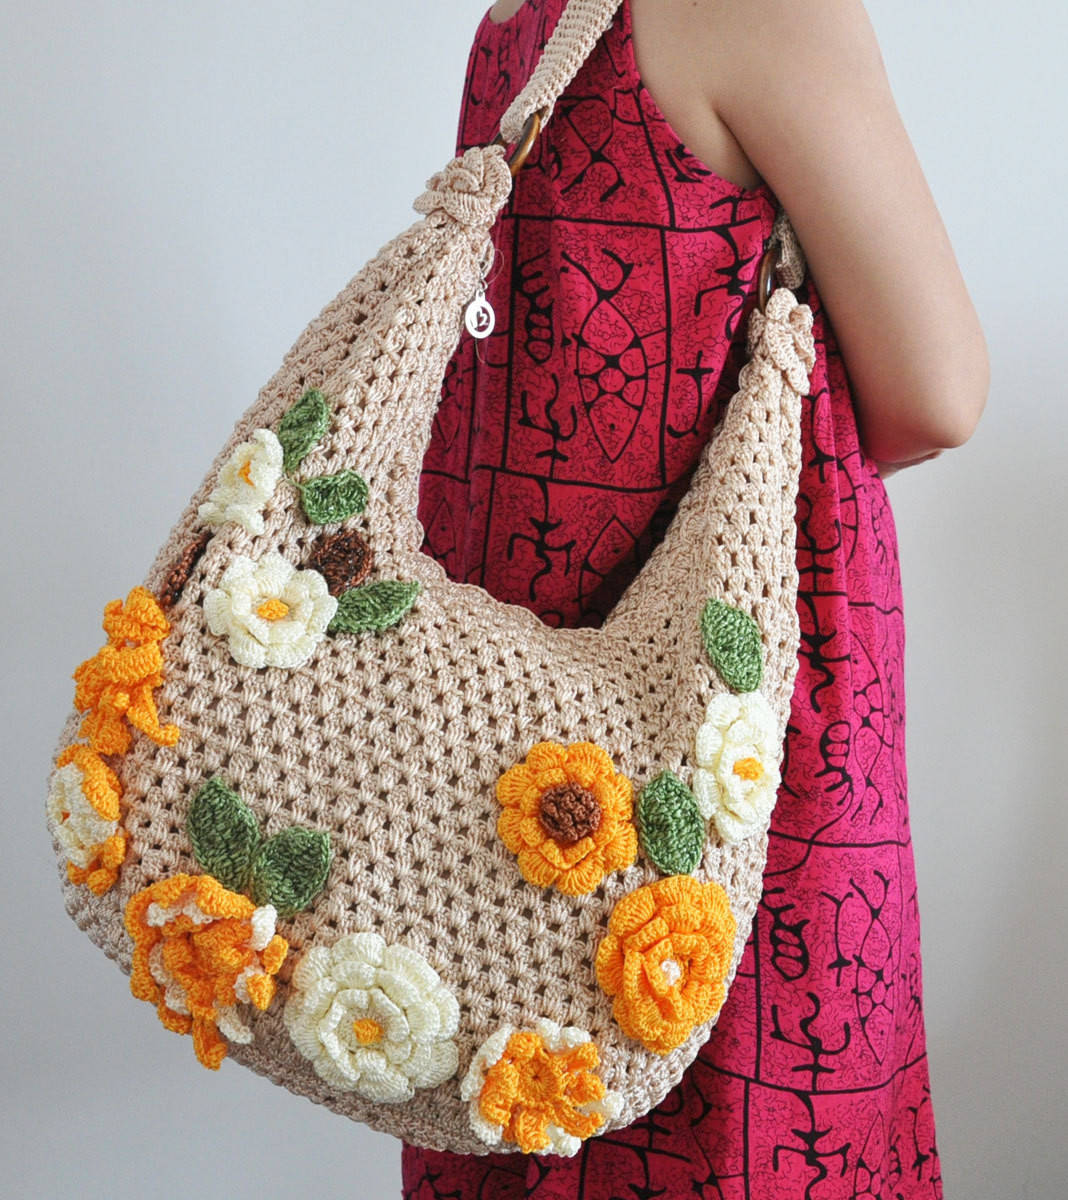 Crochet Pouch Fresh Floral Bag 5 Crochet Flower Applique Bag Of Awesome 48 Pics Crochet Pouch